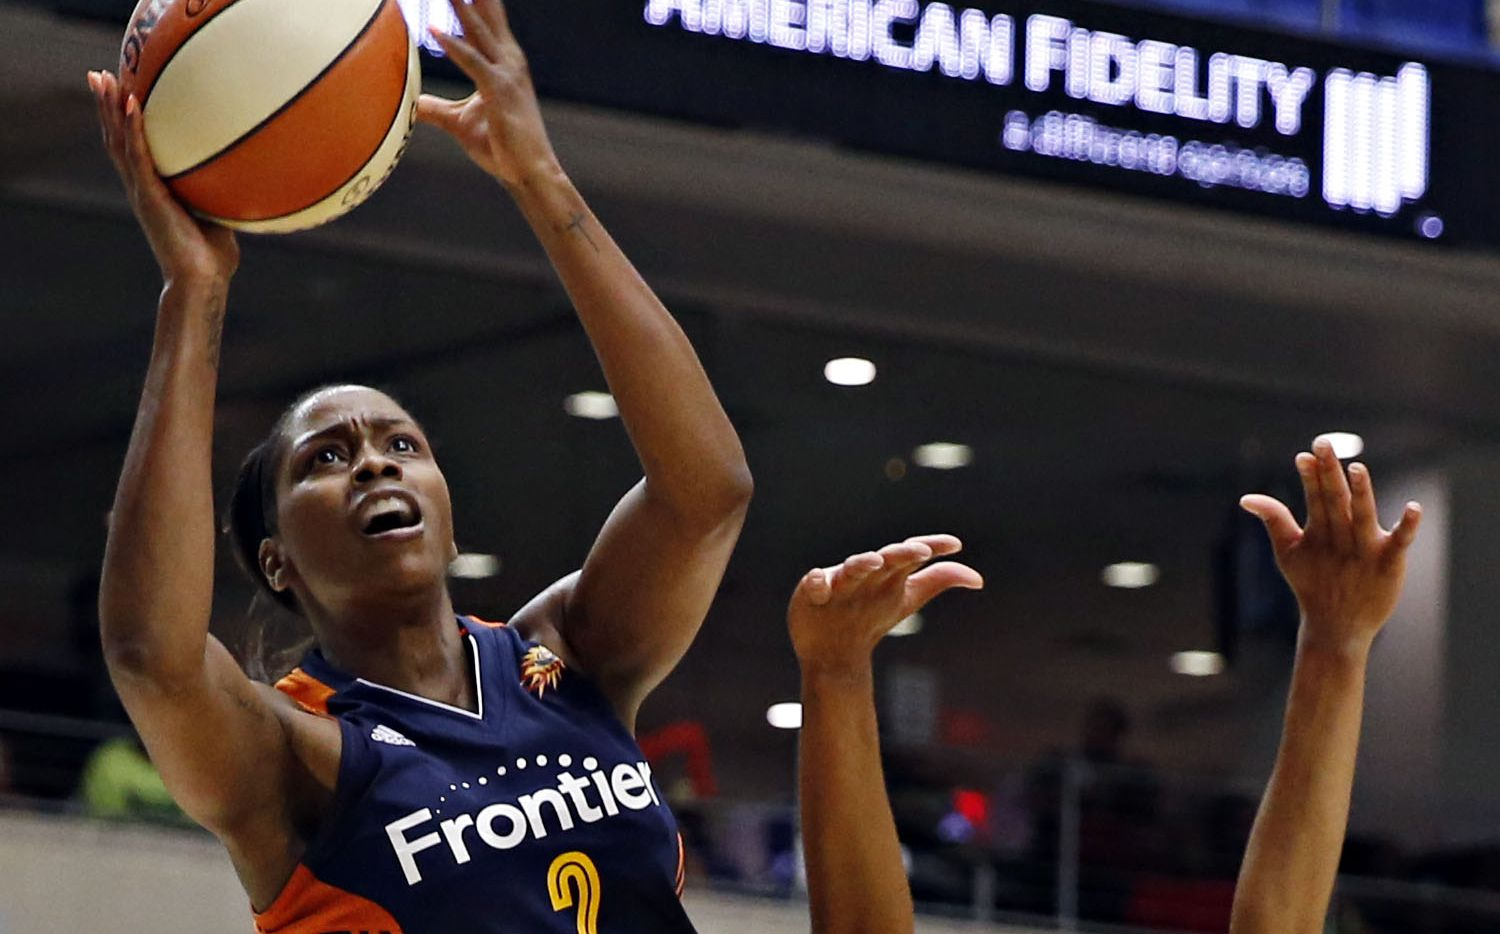 Connecticut Sun forward Camille Little (2) gets by Dallas Wings forward Aerial Powers during the first half of their game Saturday, July 2, 2016 at College Park Center in Arlington, Texas.